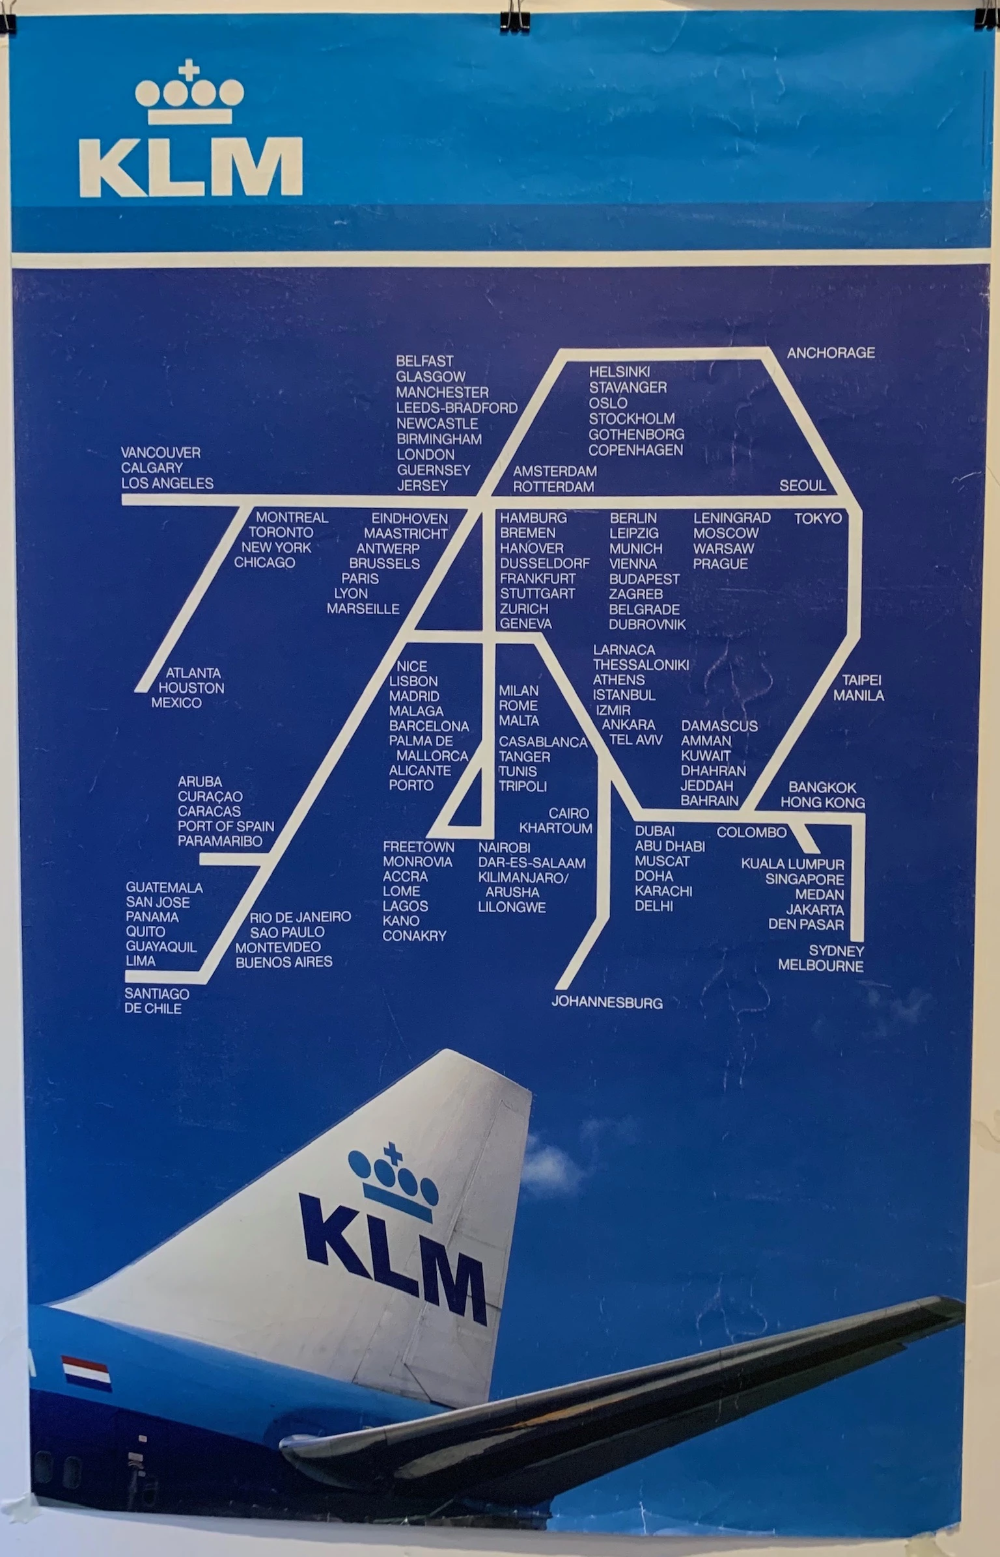 Klm Airlines Travel Airplane Locations Poster Museum Airline Travel Klm Airlines Zagreb